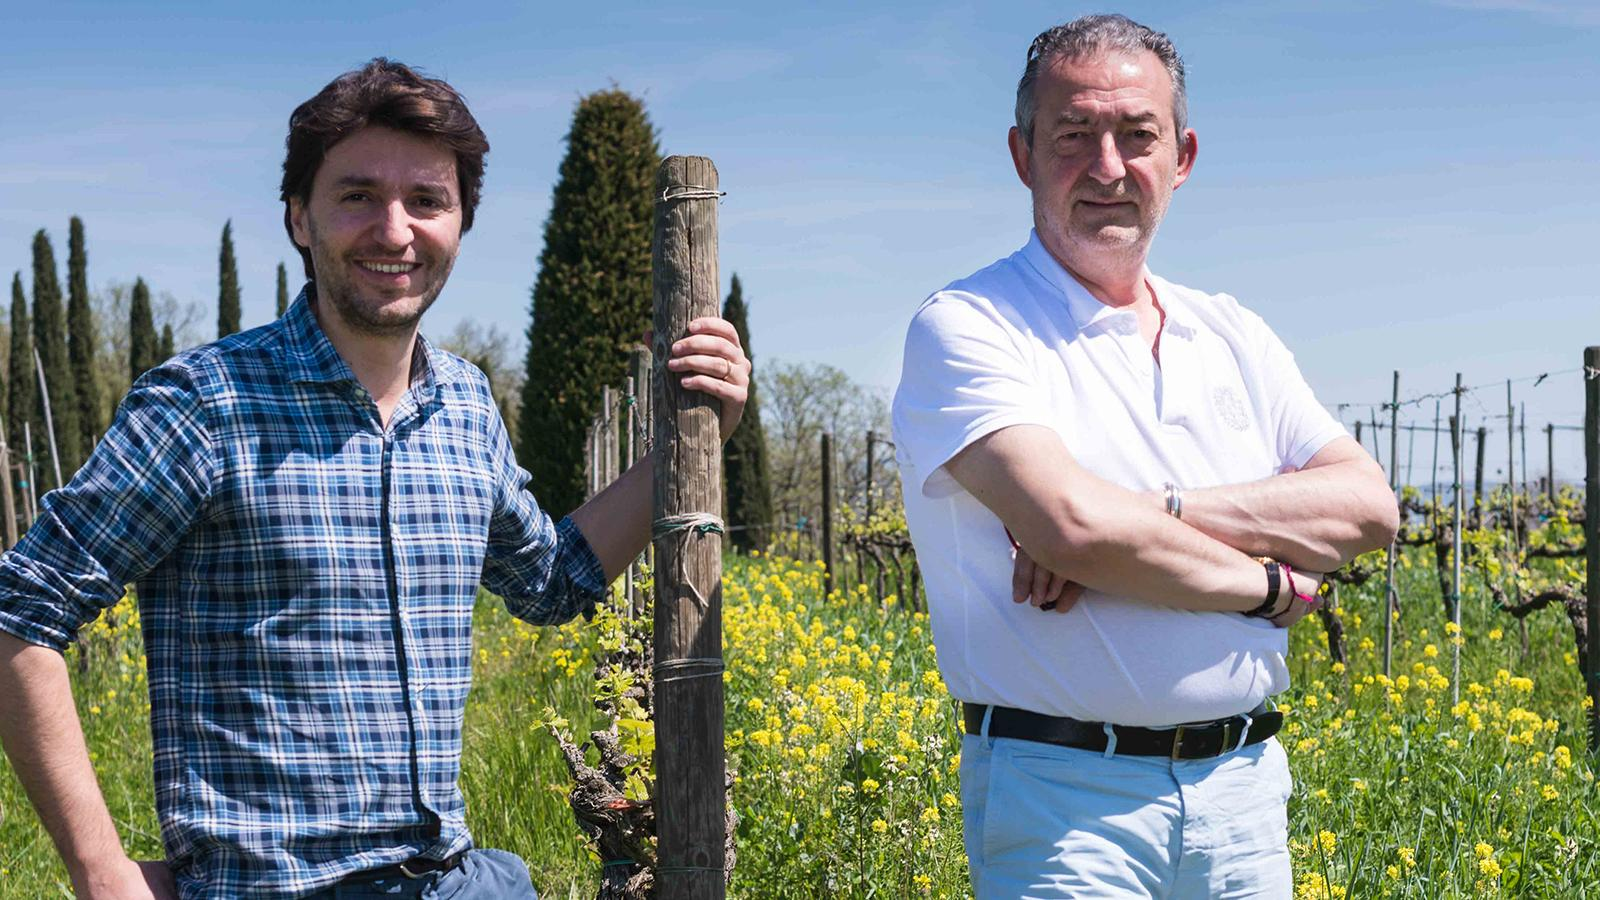 Avignonesi's Max de Zarobe (right) and winemaker and CEO Matteo Giustiniani are both part of an effort to revive the reputation of Tuscany's Vino Nobile di Montepulciano.